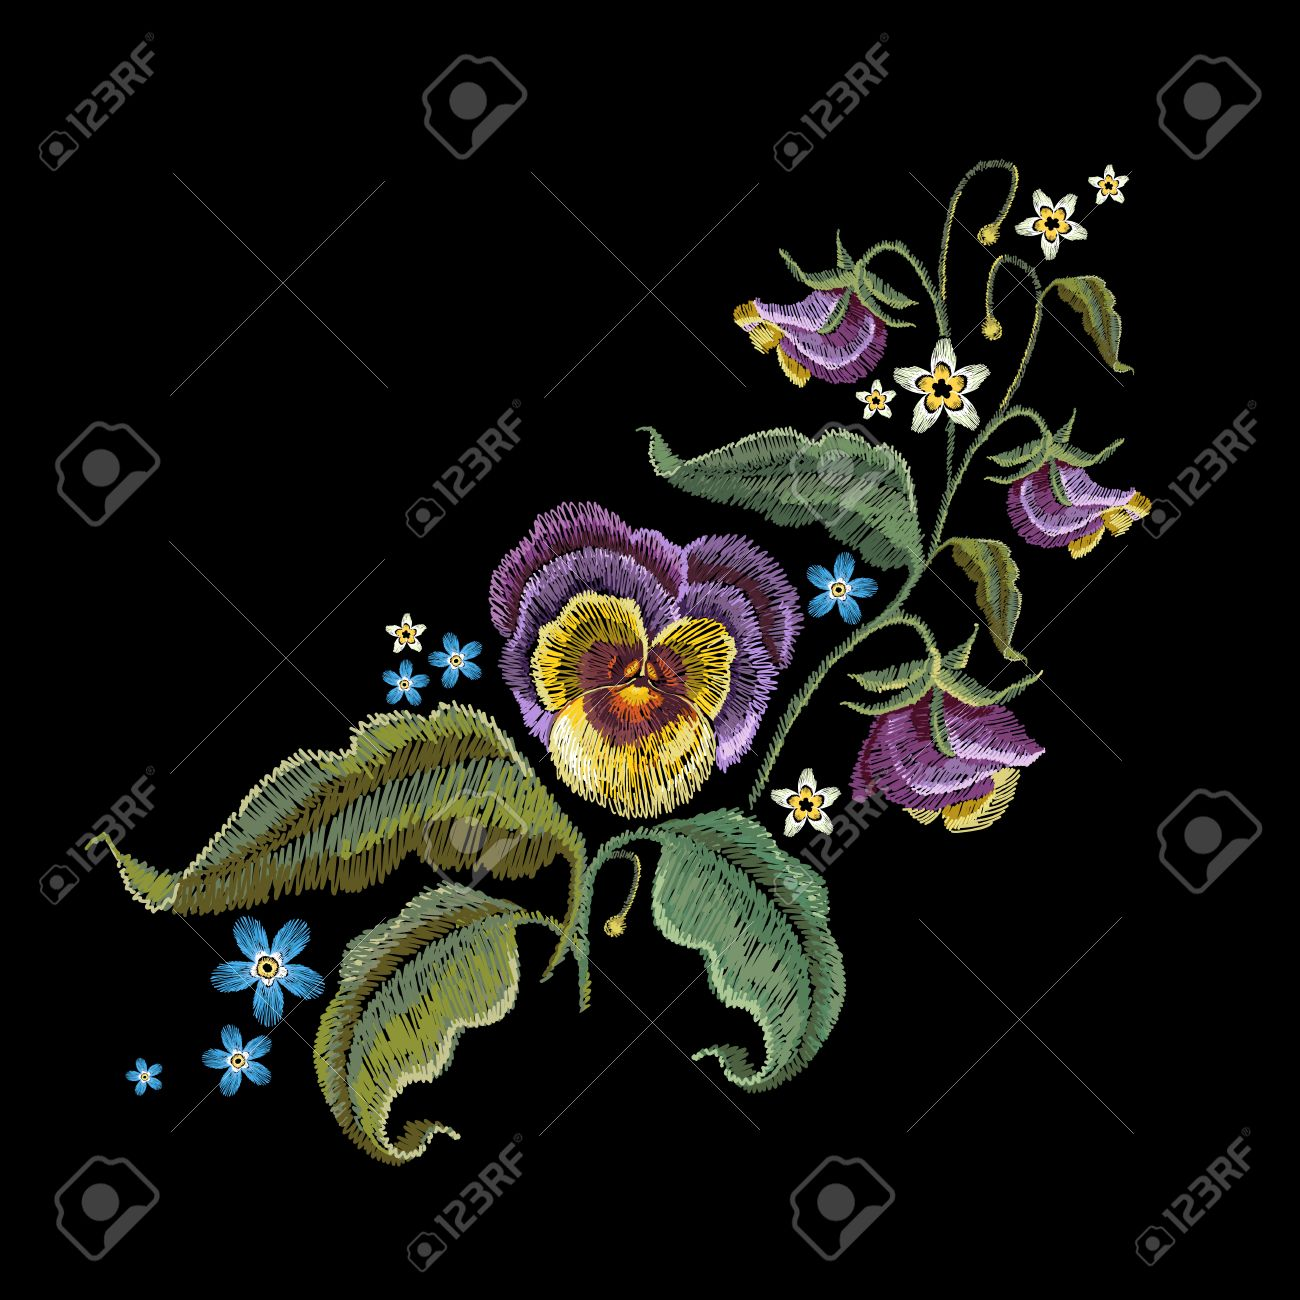 Violets Flower Embroidery Classical Embroidery Beautiful Summer Royalty Free Cliparts Vectors And Stock Illustration Image 80918916